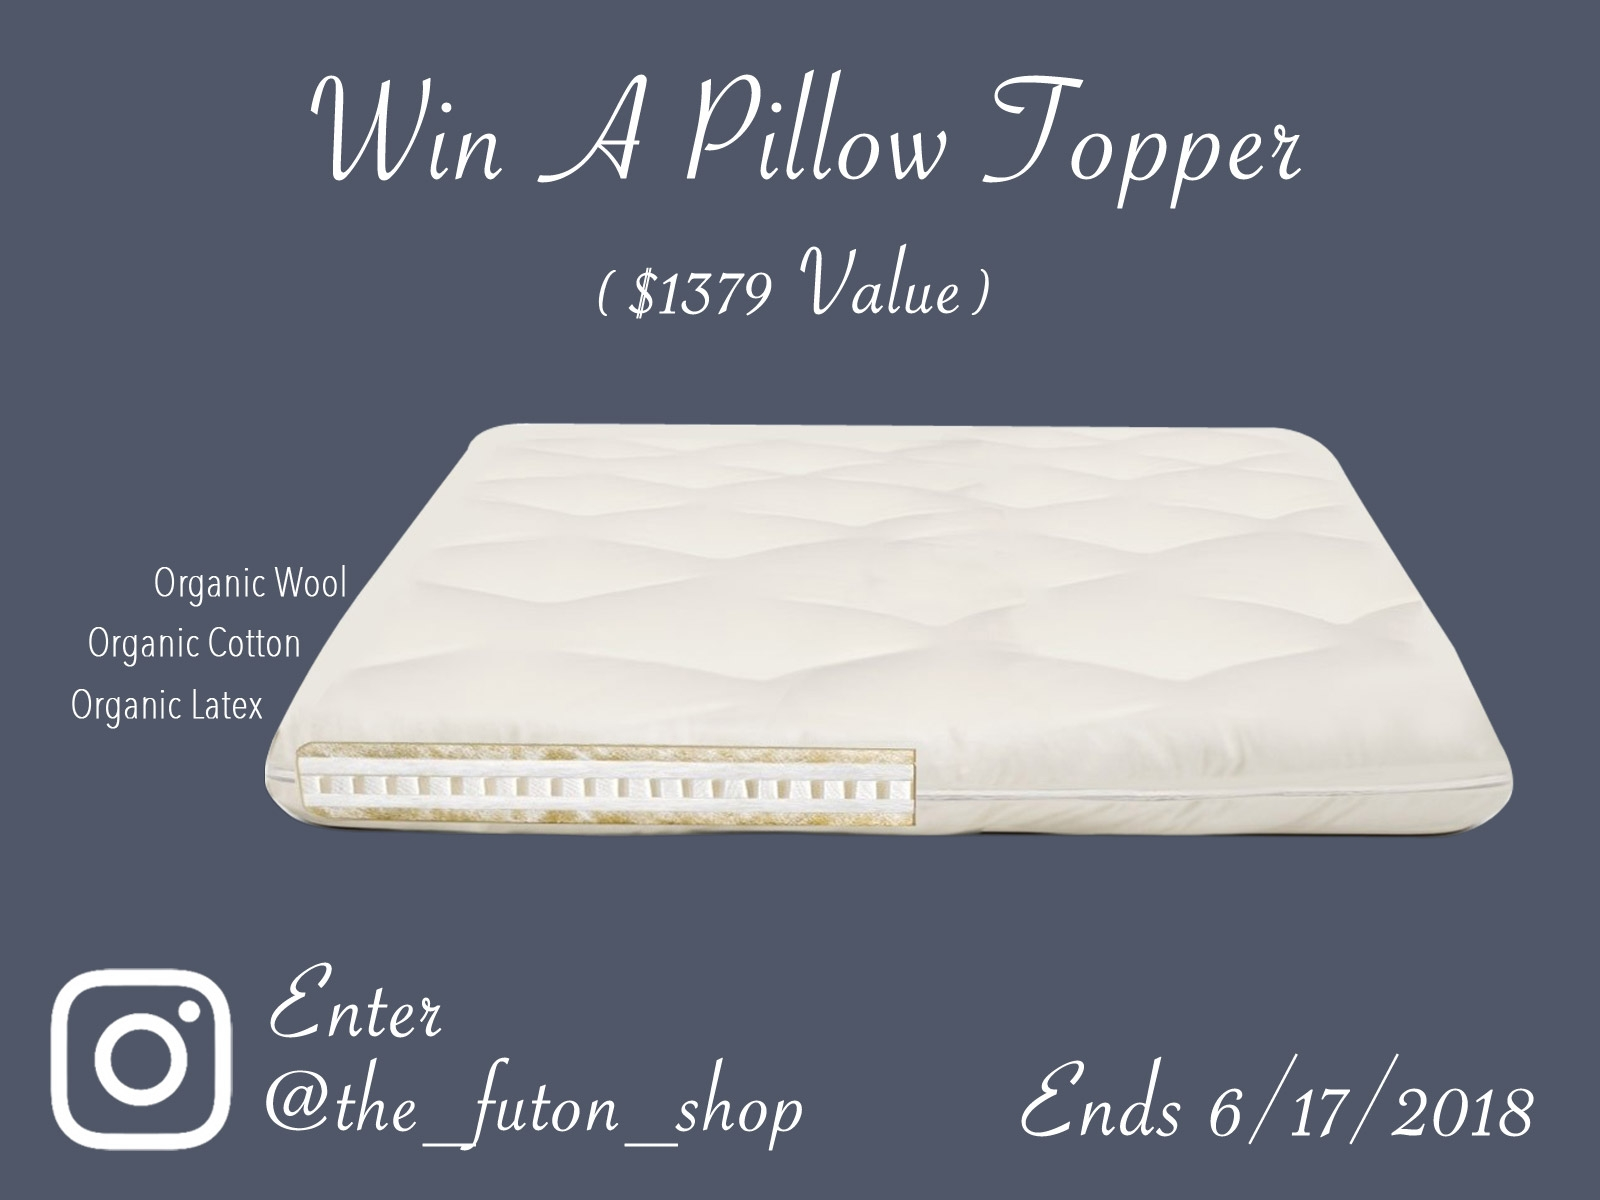 The Futon Shop's Father's Day Free Pillow Topper Wth Organic Ingredients